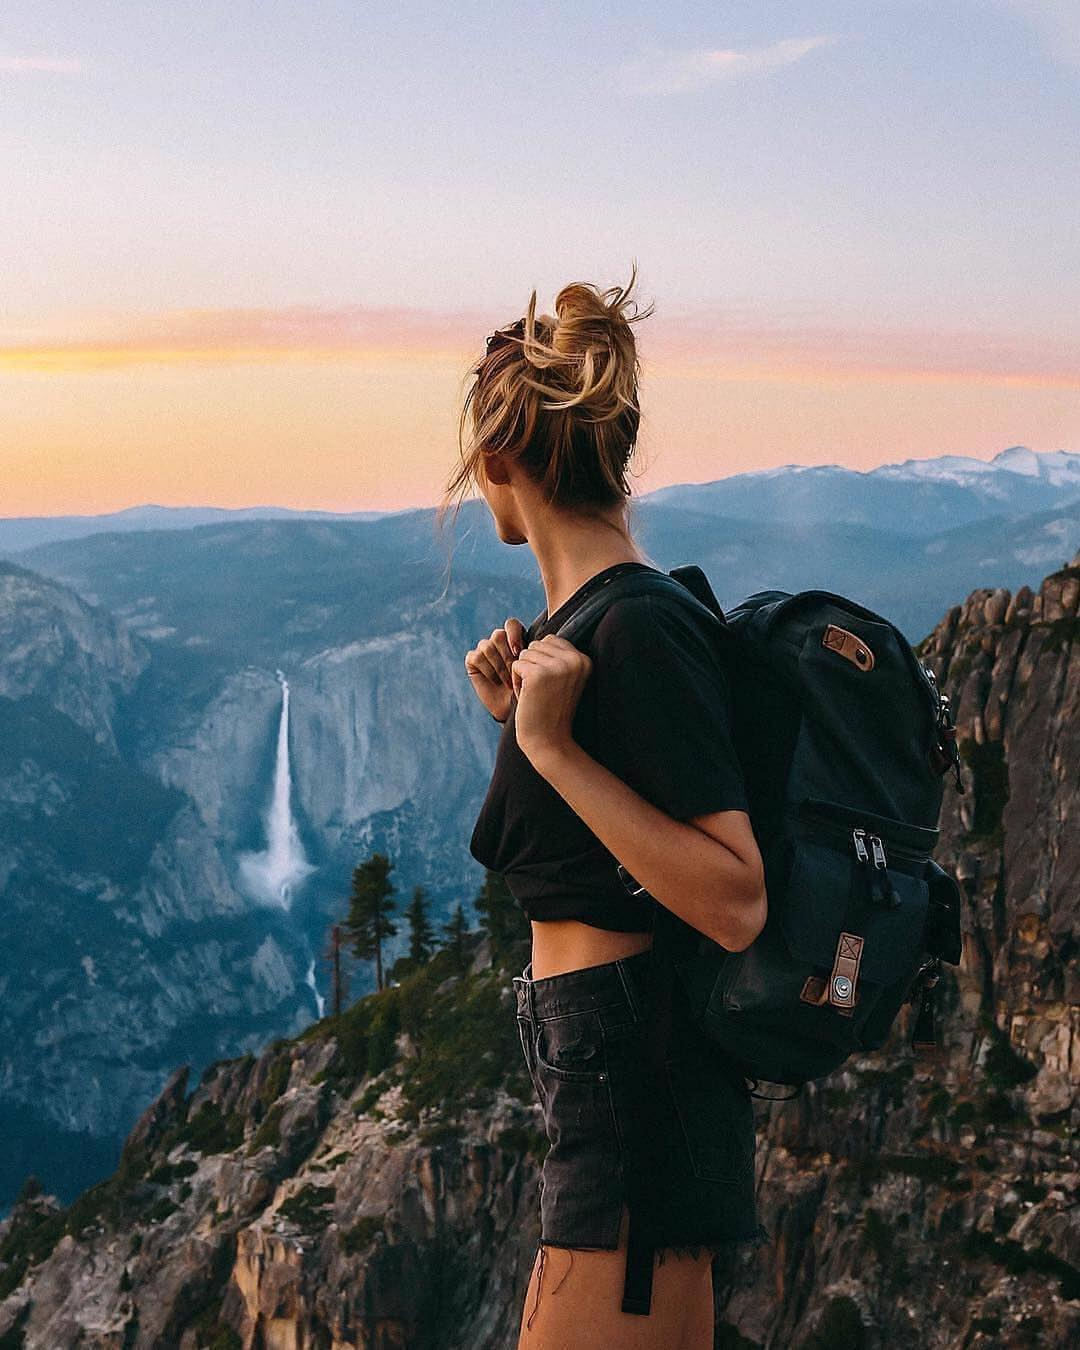 Top 7 National Parks in the USA - Yosemite